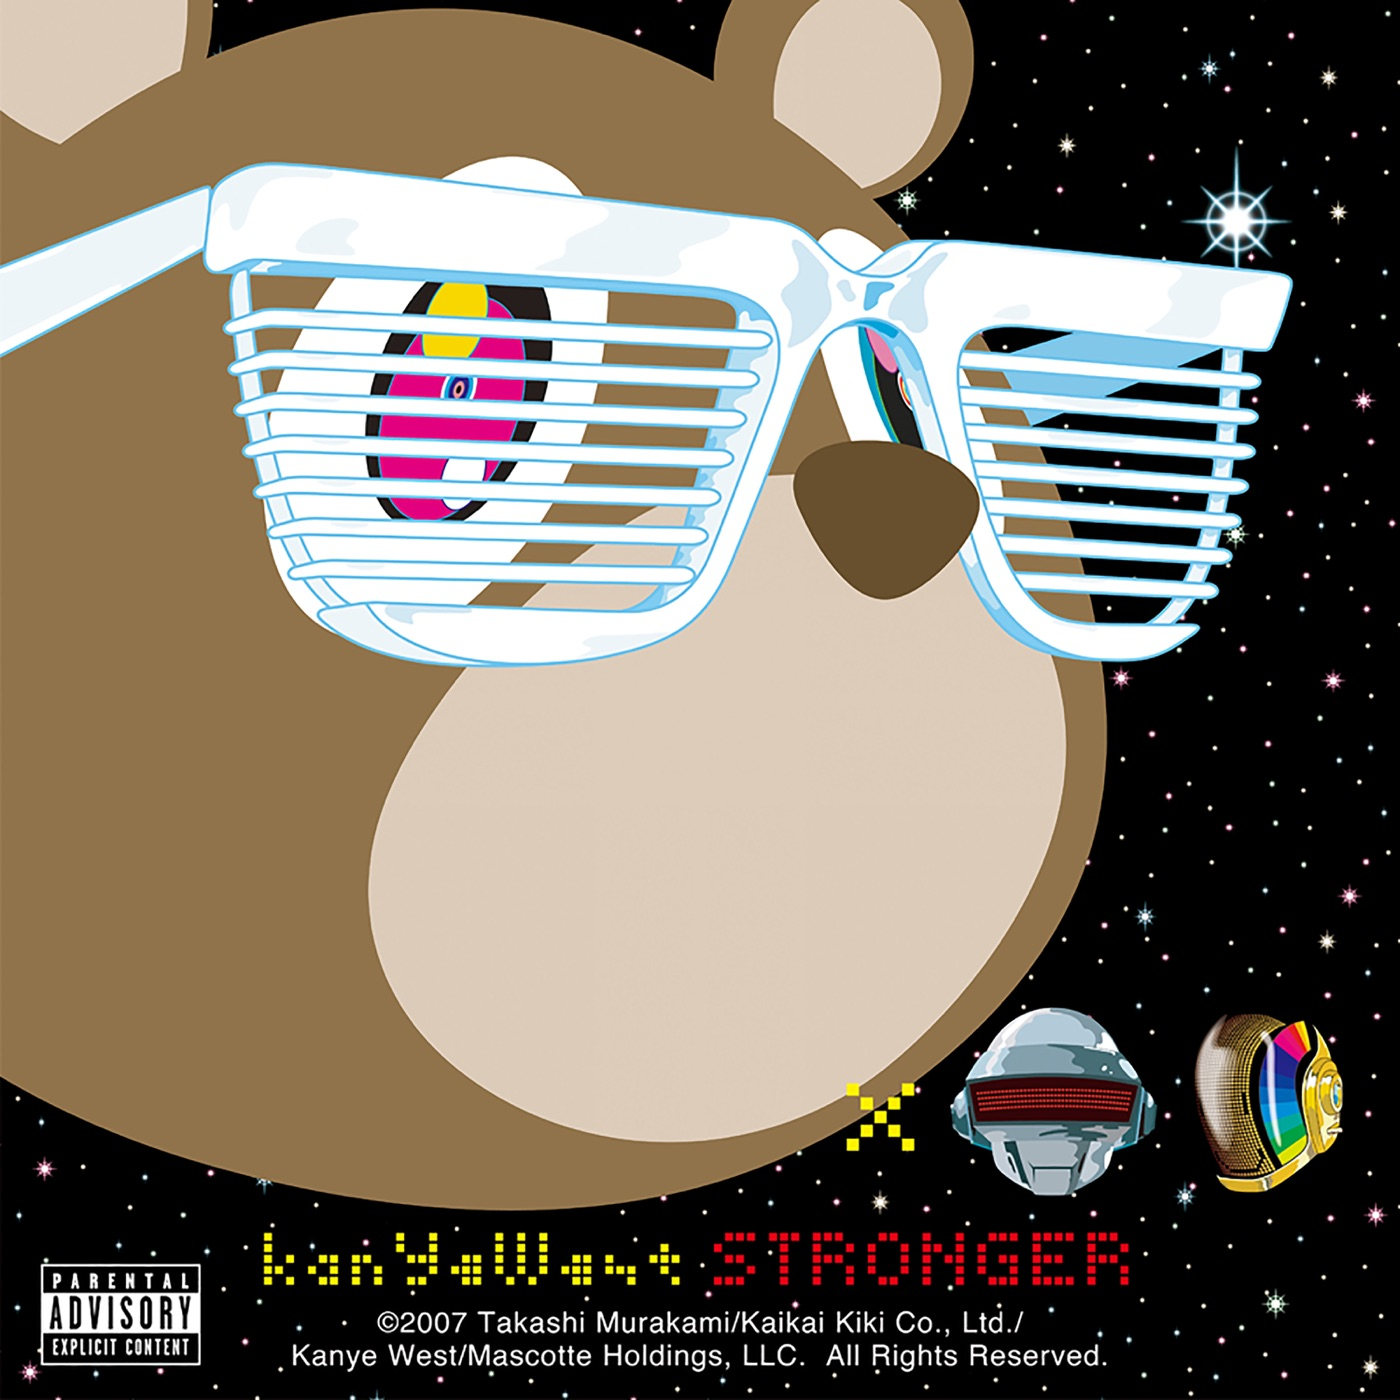 Kanye West - Stronger - Single Cover